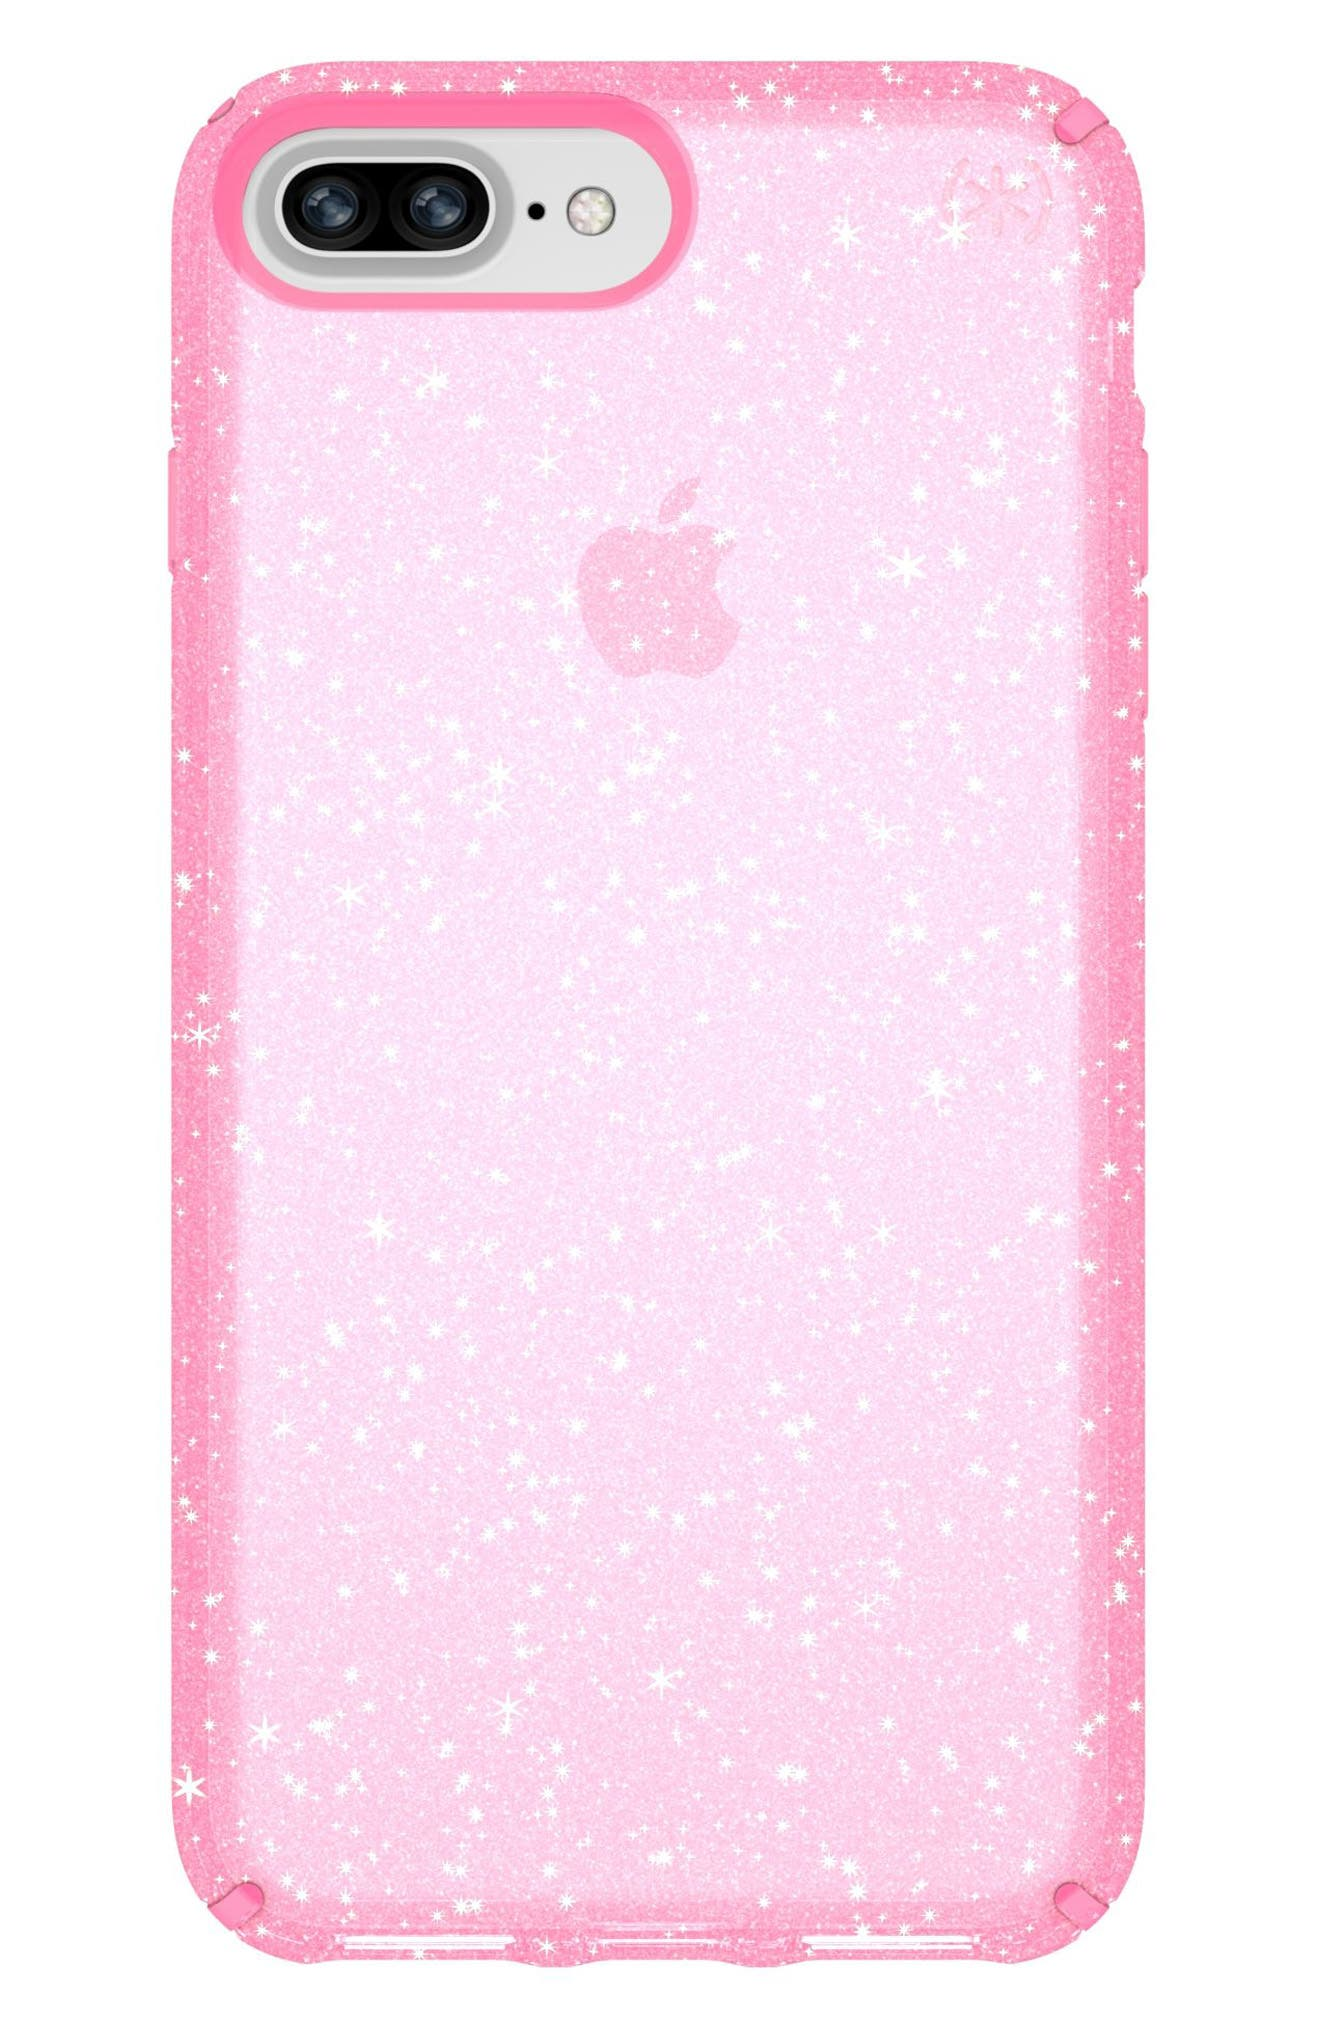 Speck iPhone 6/6s/7/8 Plus Case